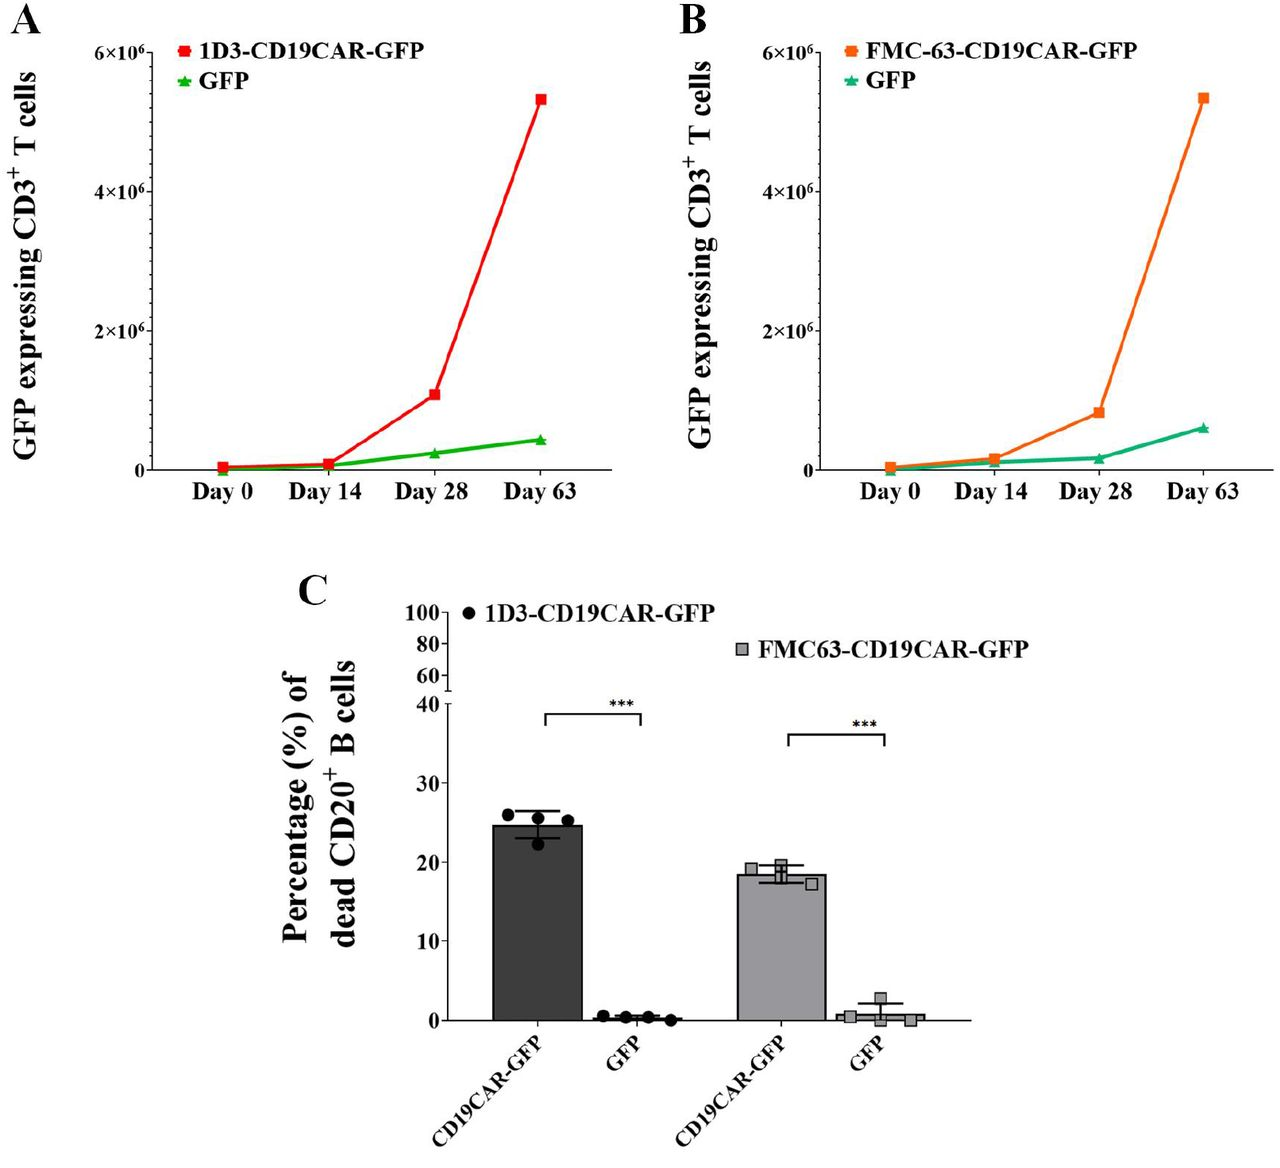 Proliferation and cytolytic properties of CD3+ T cells from C57BL/6 splenocytestransduced with 1D3-CD19CAR-GFP, FMC63-CD19CAR-GFP, or GFP only transgenes. Figure 2A : 2.5×10 5 C57BL/6 splenocytes were transduced with 1D3-CD19CAR-GFP or GFP-only lentivirus at an MOI of 5. The transduced splenocytes were then co-cultured with an excess of irradiated C57BL/6 splenocytes which provided a source of B cells expressing the CD19 antigen. The 1D3-CD19CAR transduced splenocytes showed a 12.2+/− 0.09 (mean +/− SD) fold greater expansion (red, square), compared to GFP transduced (green, triangle) (p